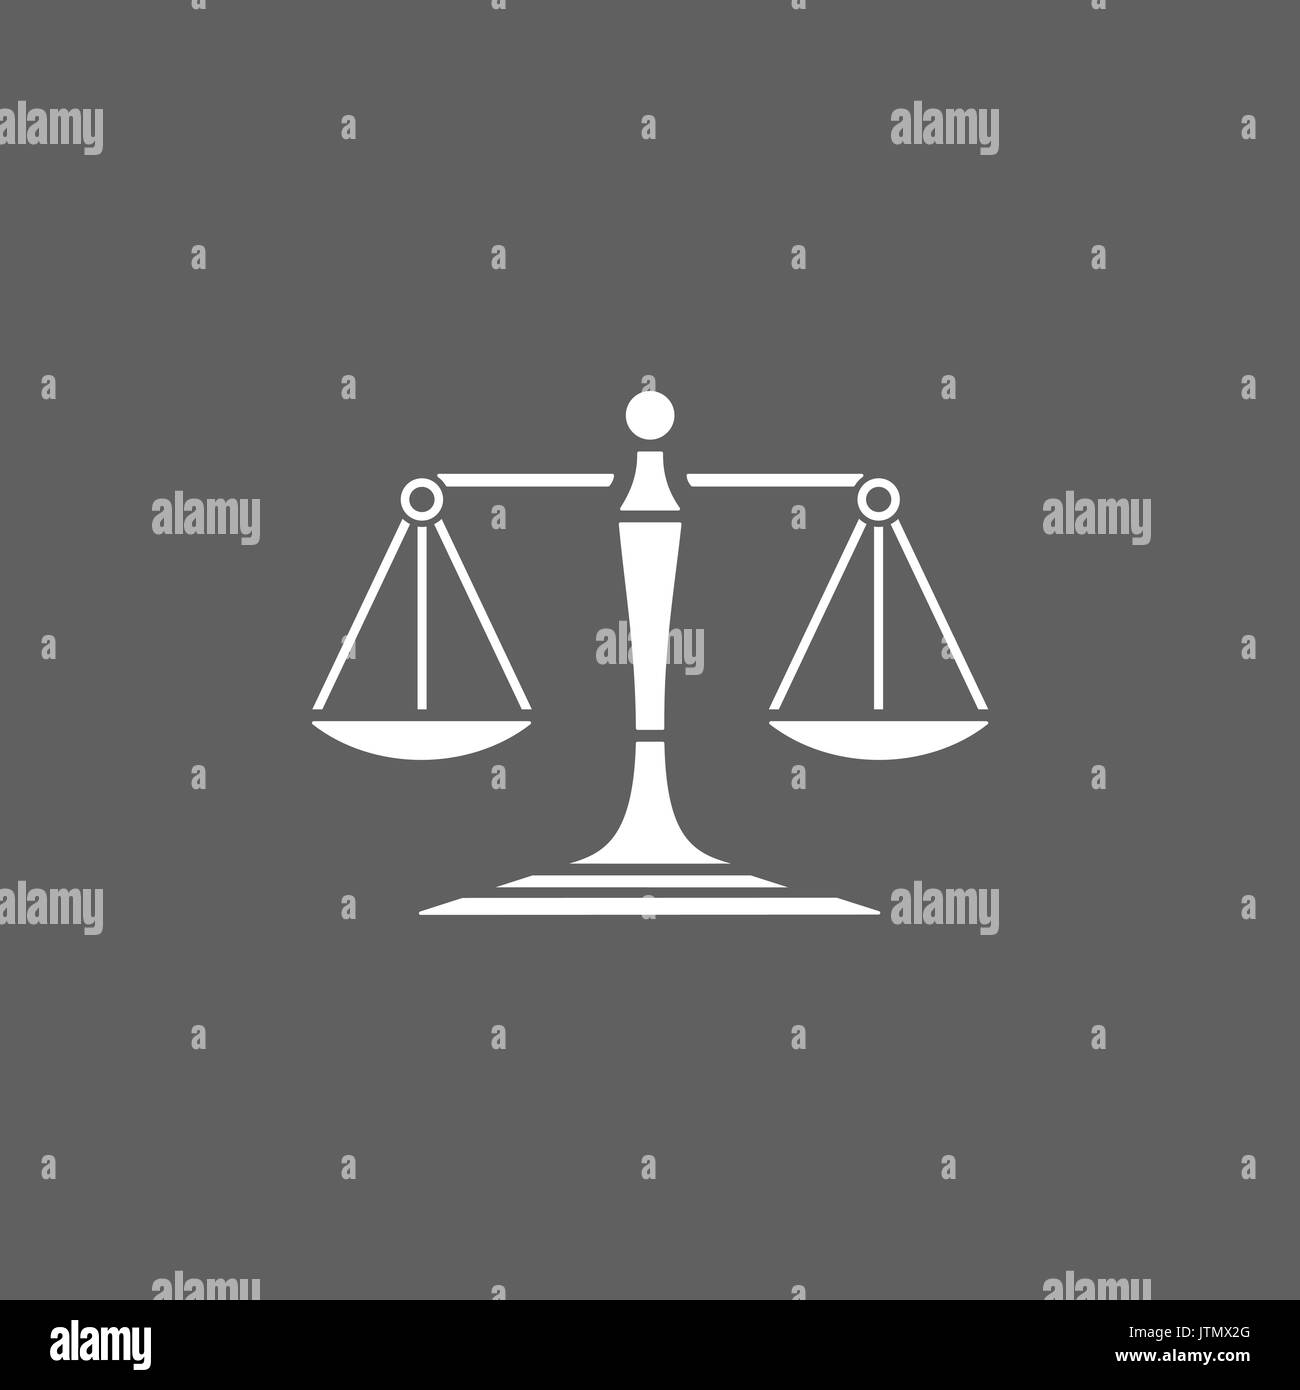 Scales of justice icon on a dark background - Stock Vector